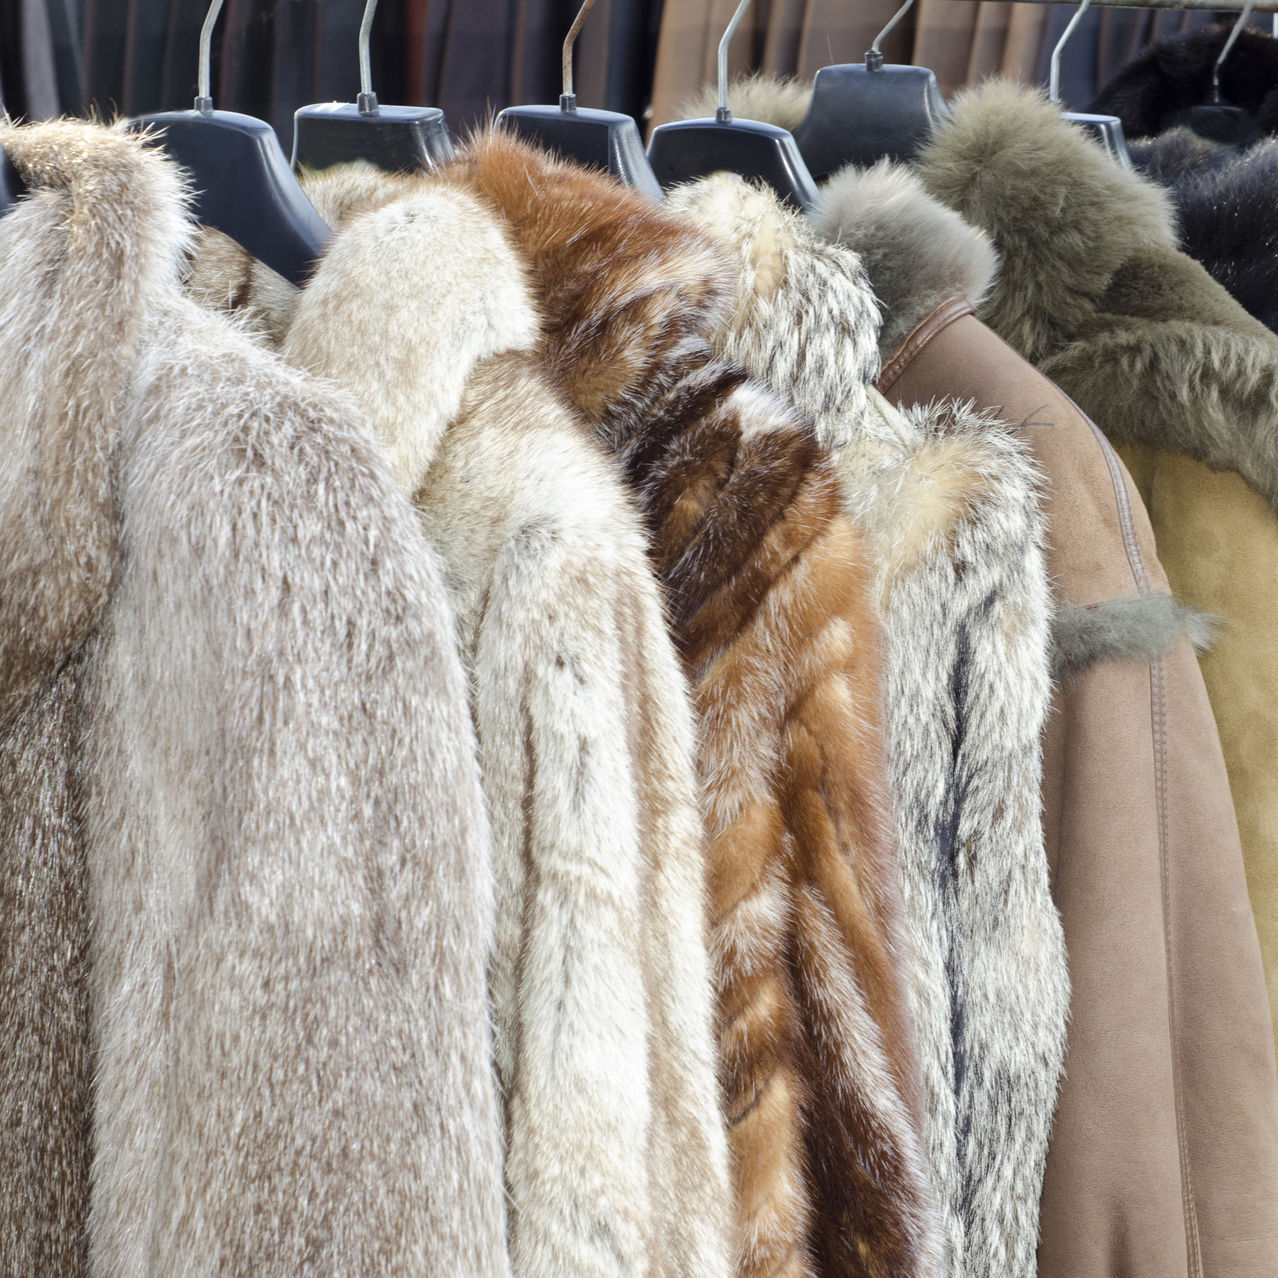 Coats made from animal fur.